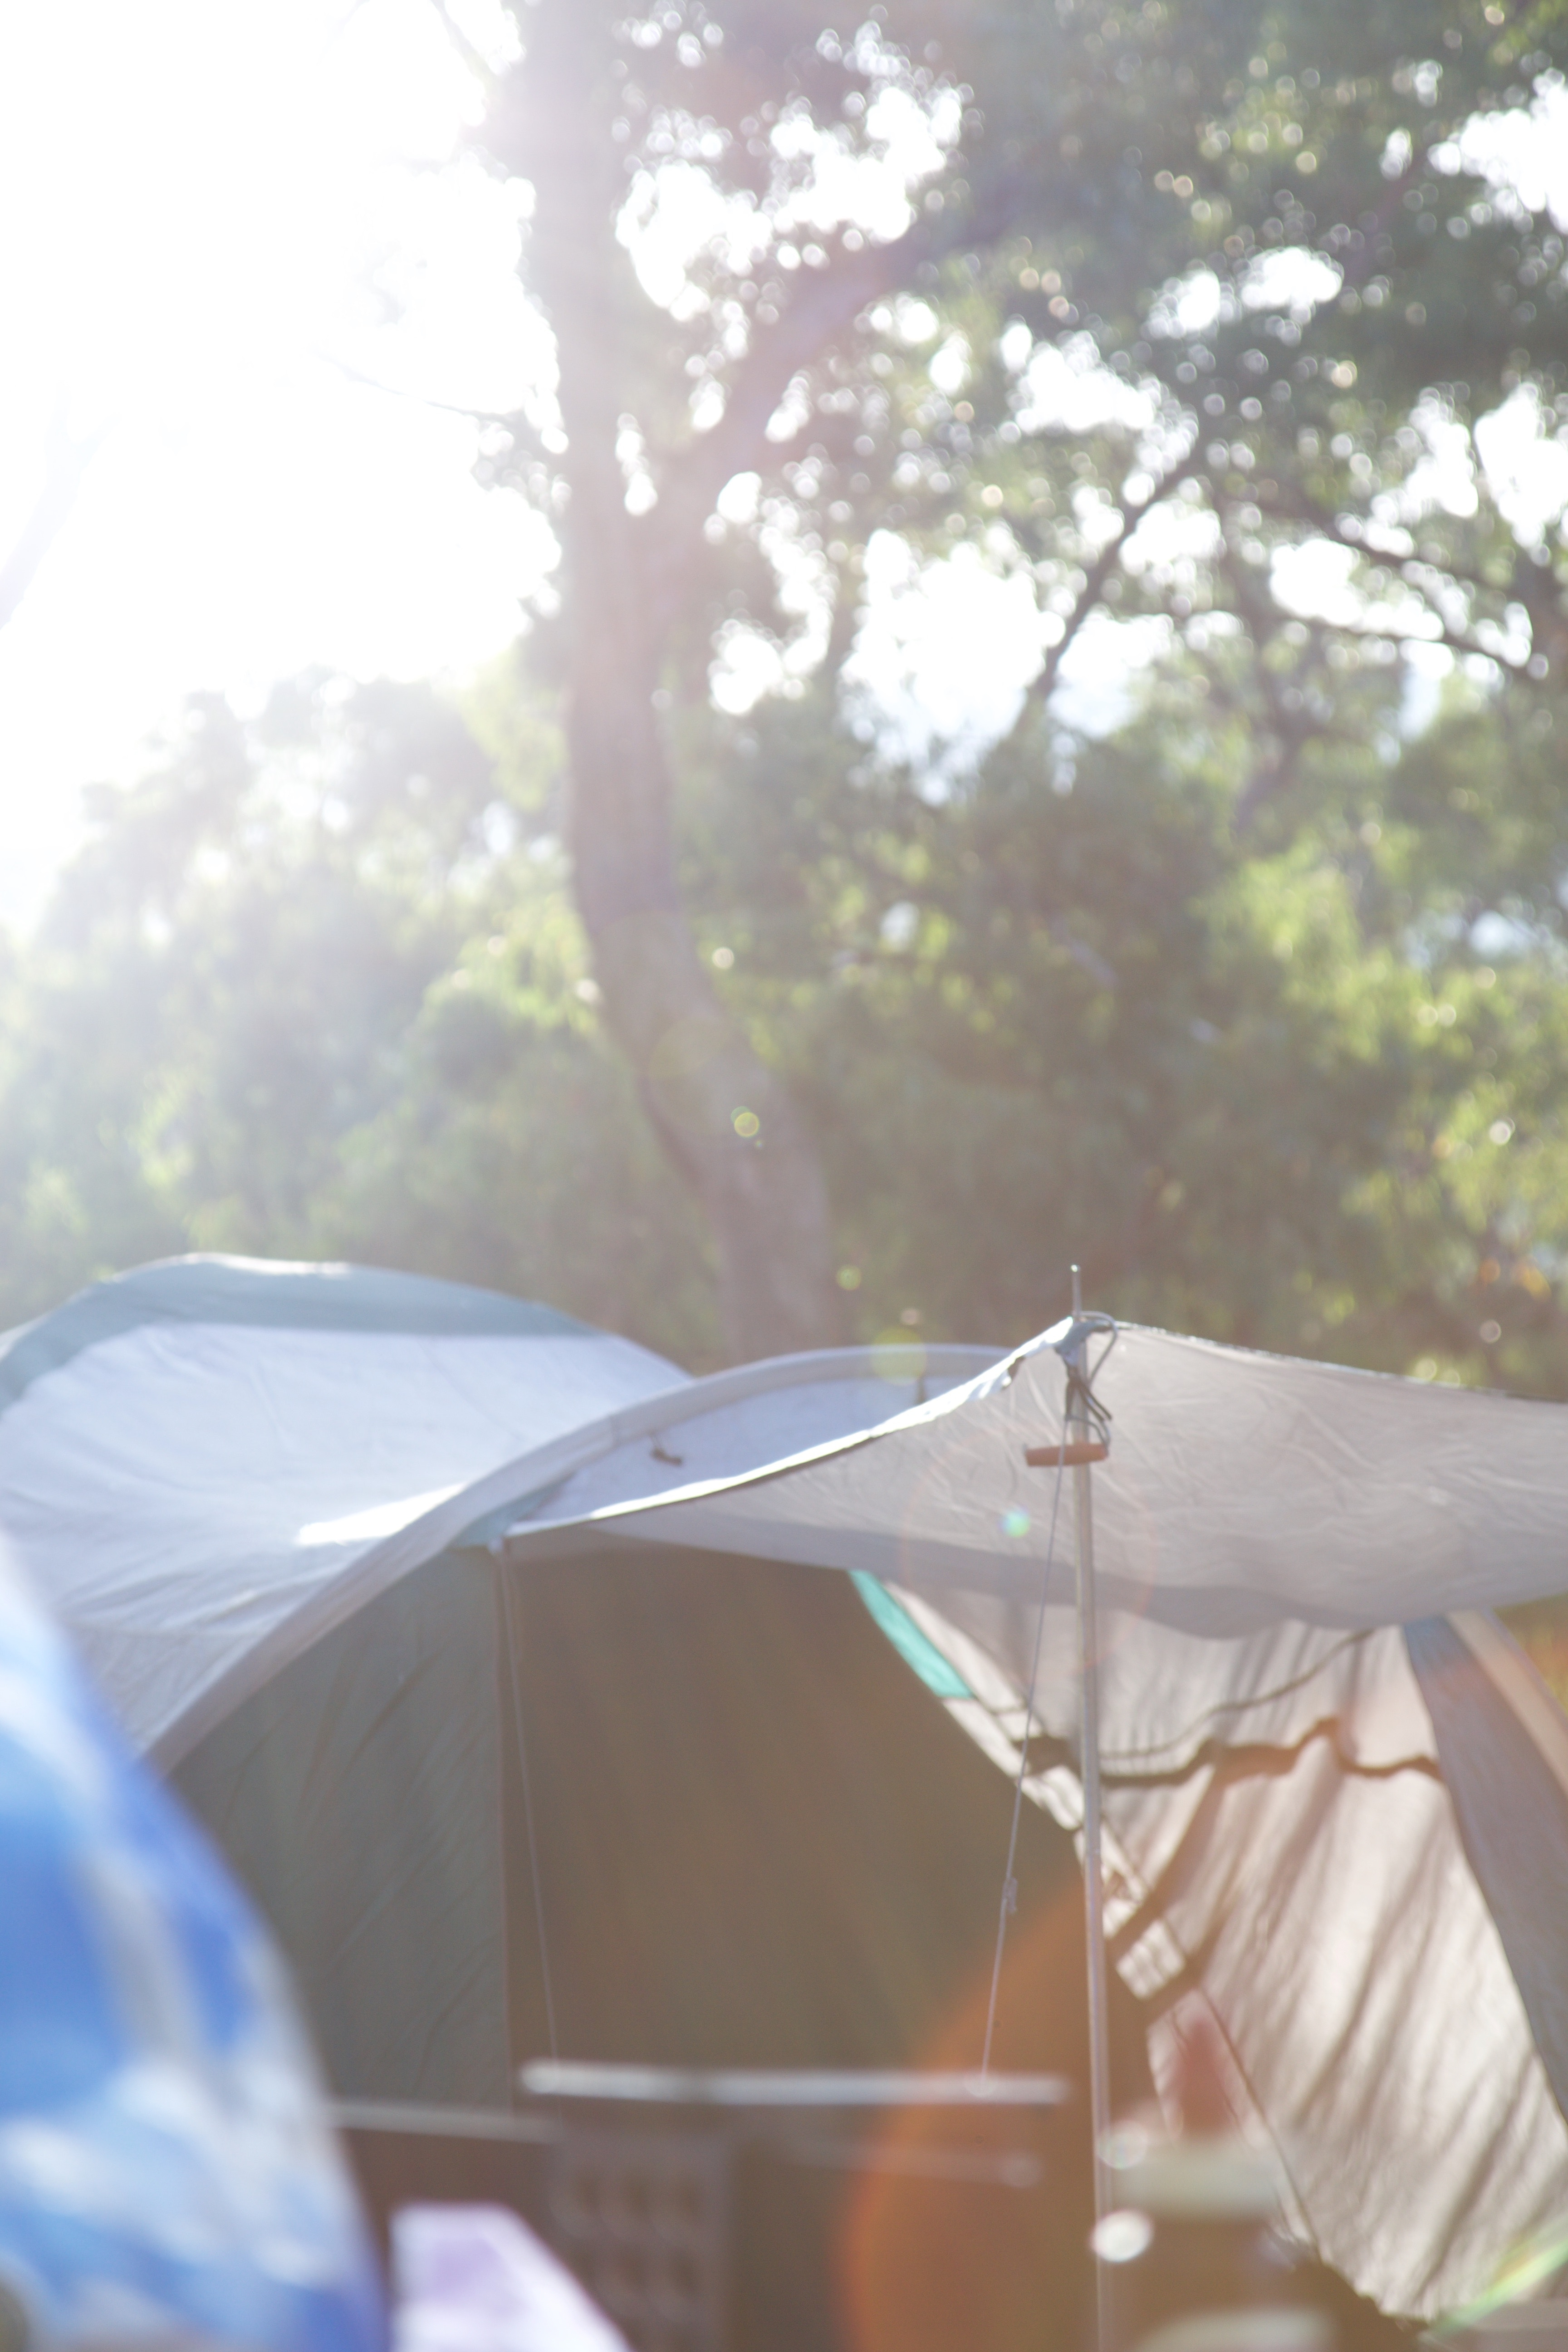 Tent C&ing Tips for Families & Tent Camping Tips for Families | DETER Outdoor Skin Protection